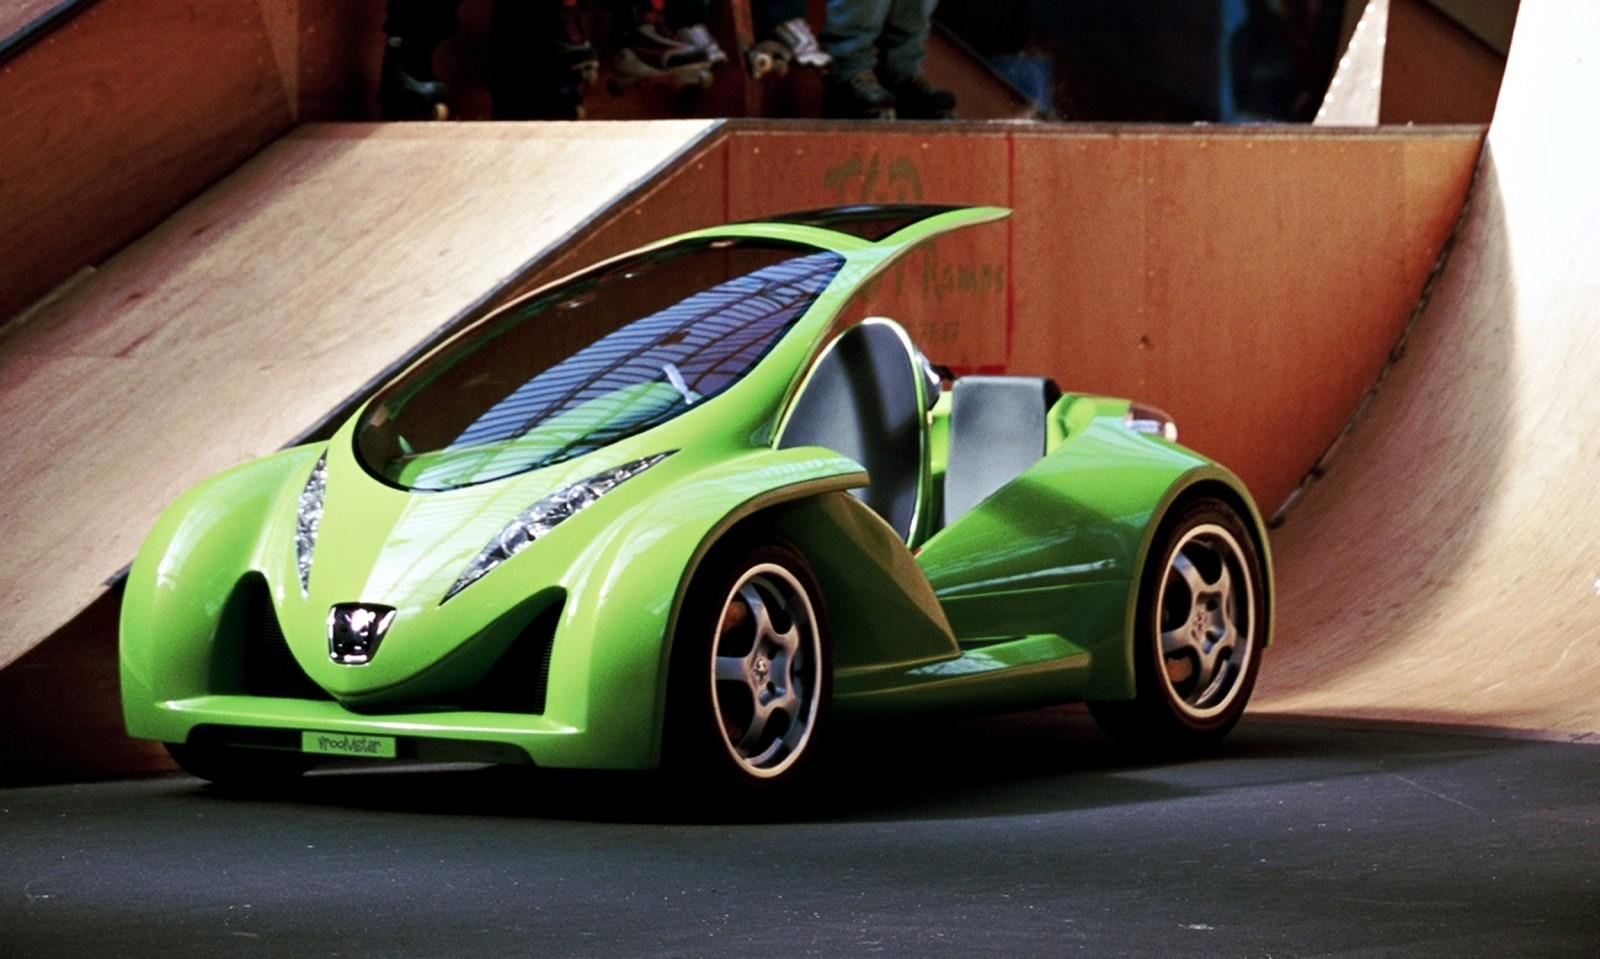 Concept Flashback 2000 Peugeot City Toys Kartup Vroomster Edoll And Bo...